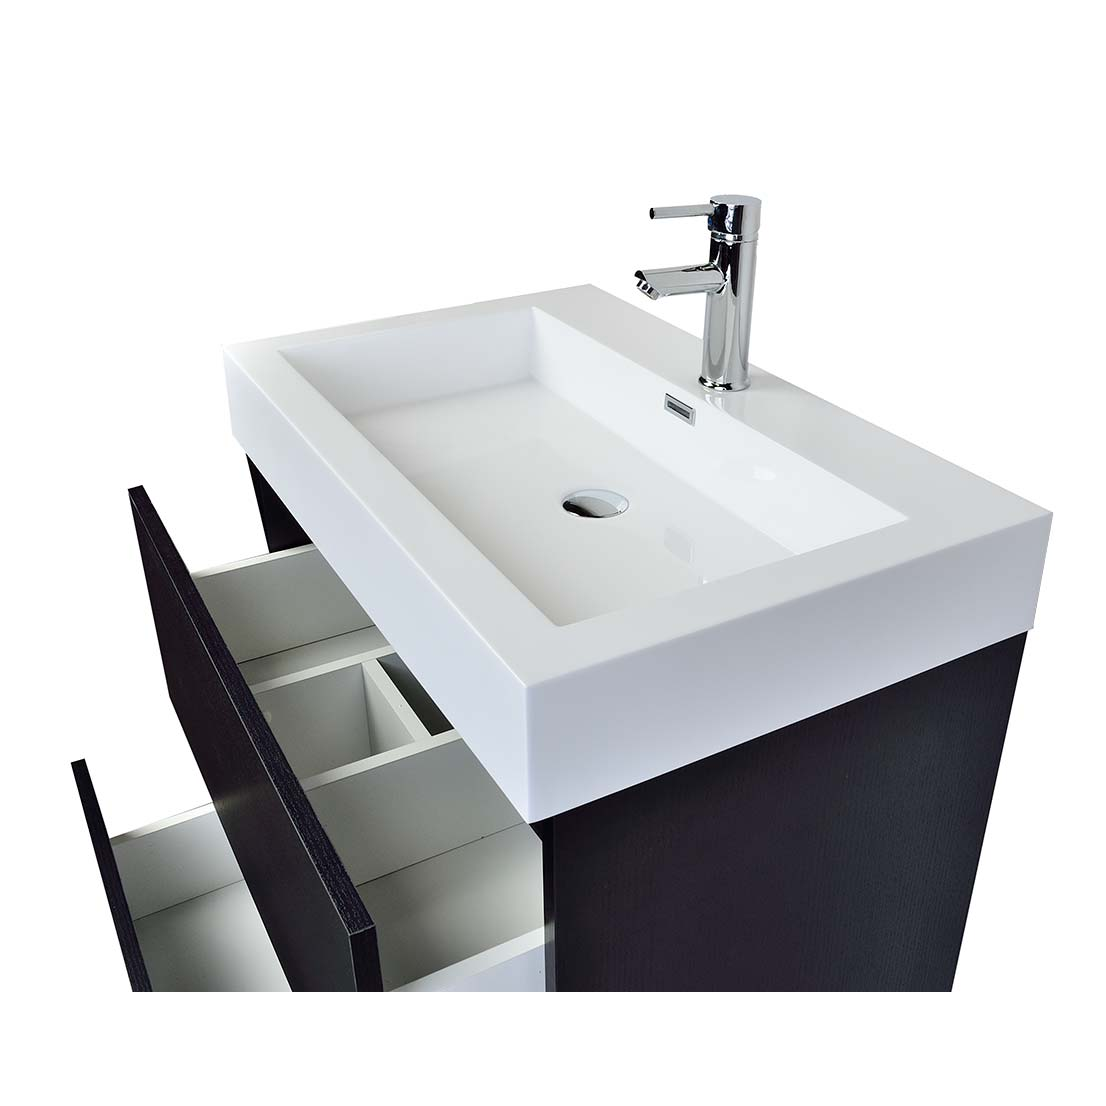 29 5 contemporary bathroom vanity black tn ly750 bk